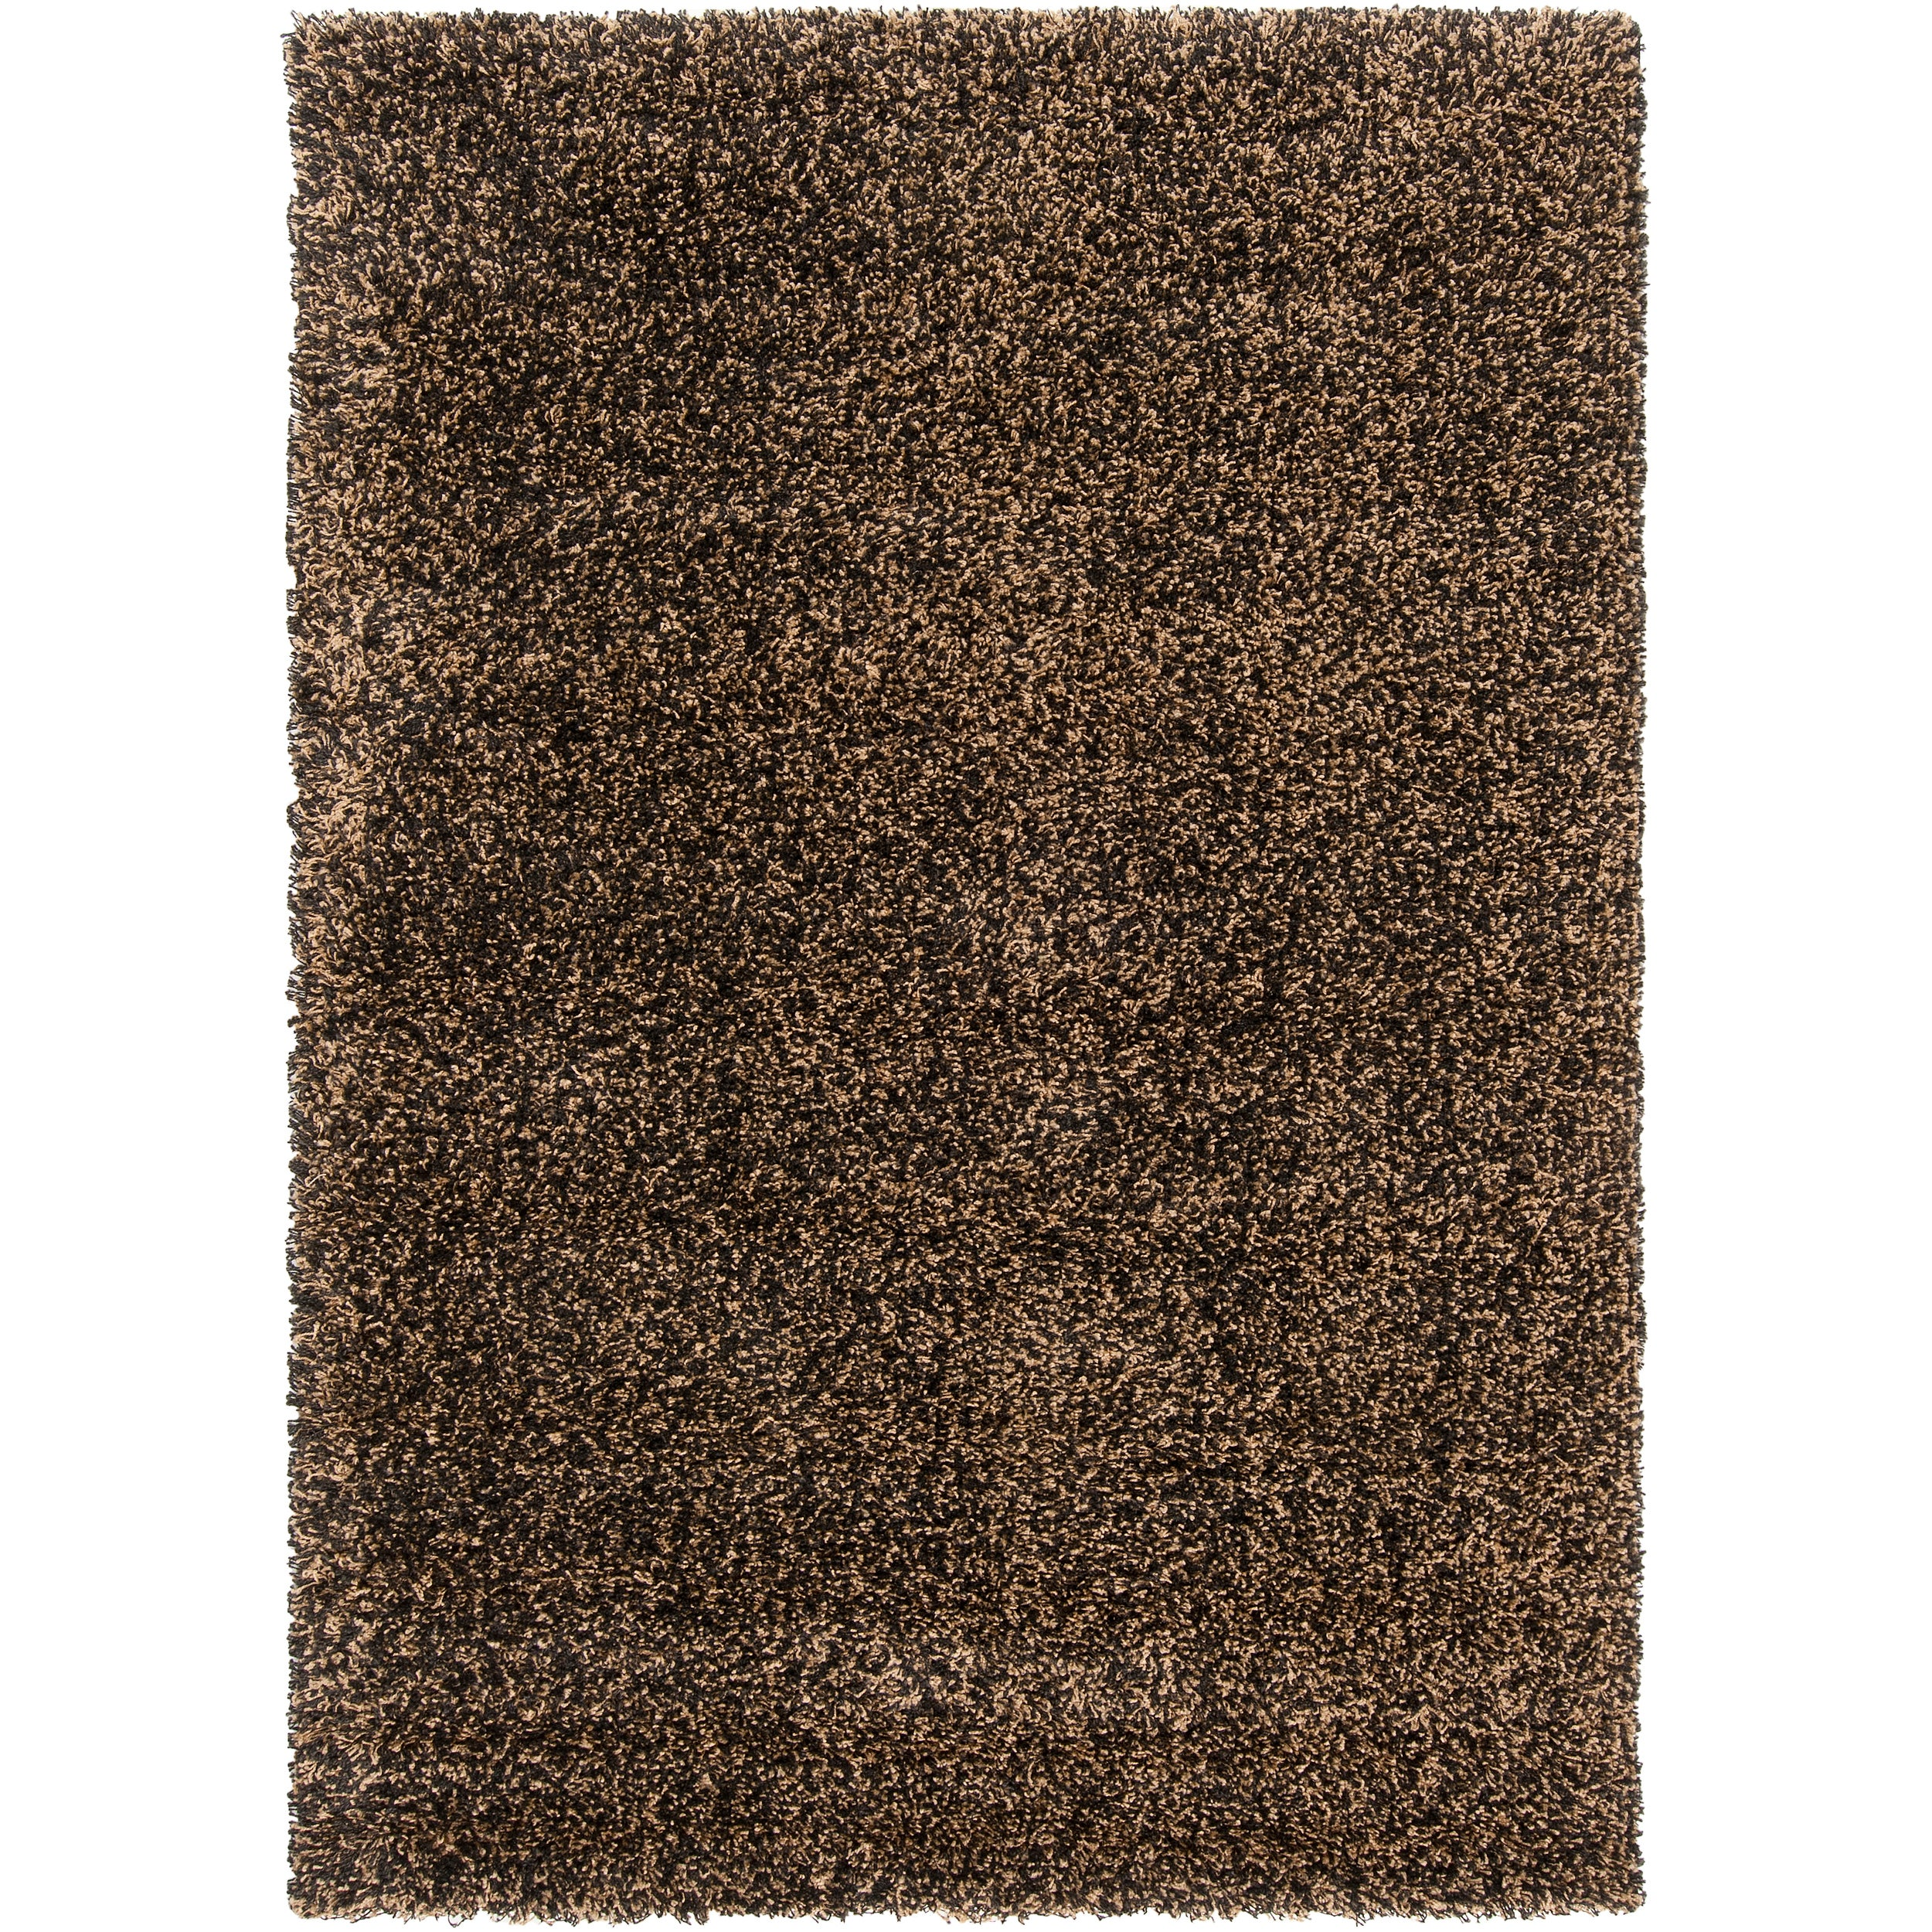 Woven Grey Luxurious Soft Shag Rug (7'10 x 10'6)